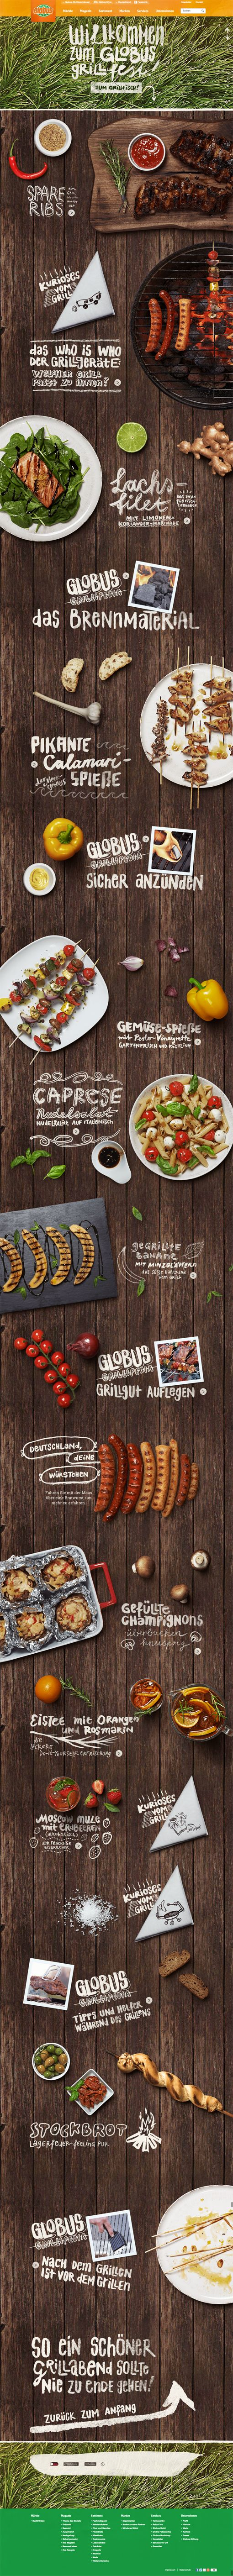 The Globus Grillfest by Kathrin Schmitz, via Behance Tendances Iscomigoo Webdesign http://iscomigoo-webdesign.blogspot.fr/